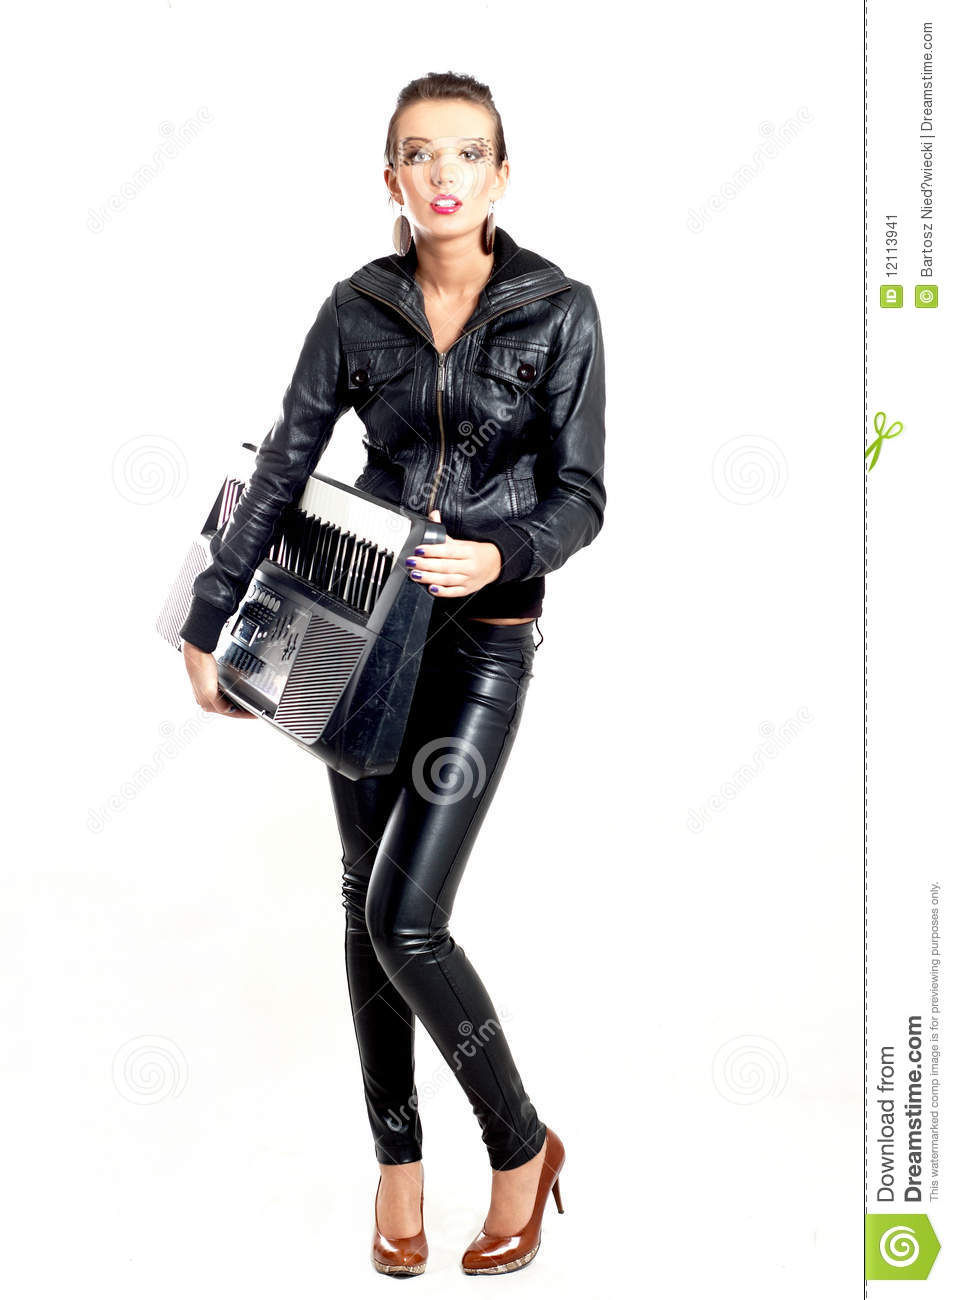 Punk Rock Fashion Girl With A Piano Stock Image Image 12113941